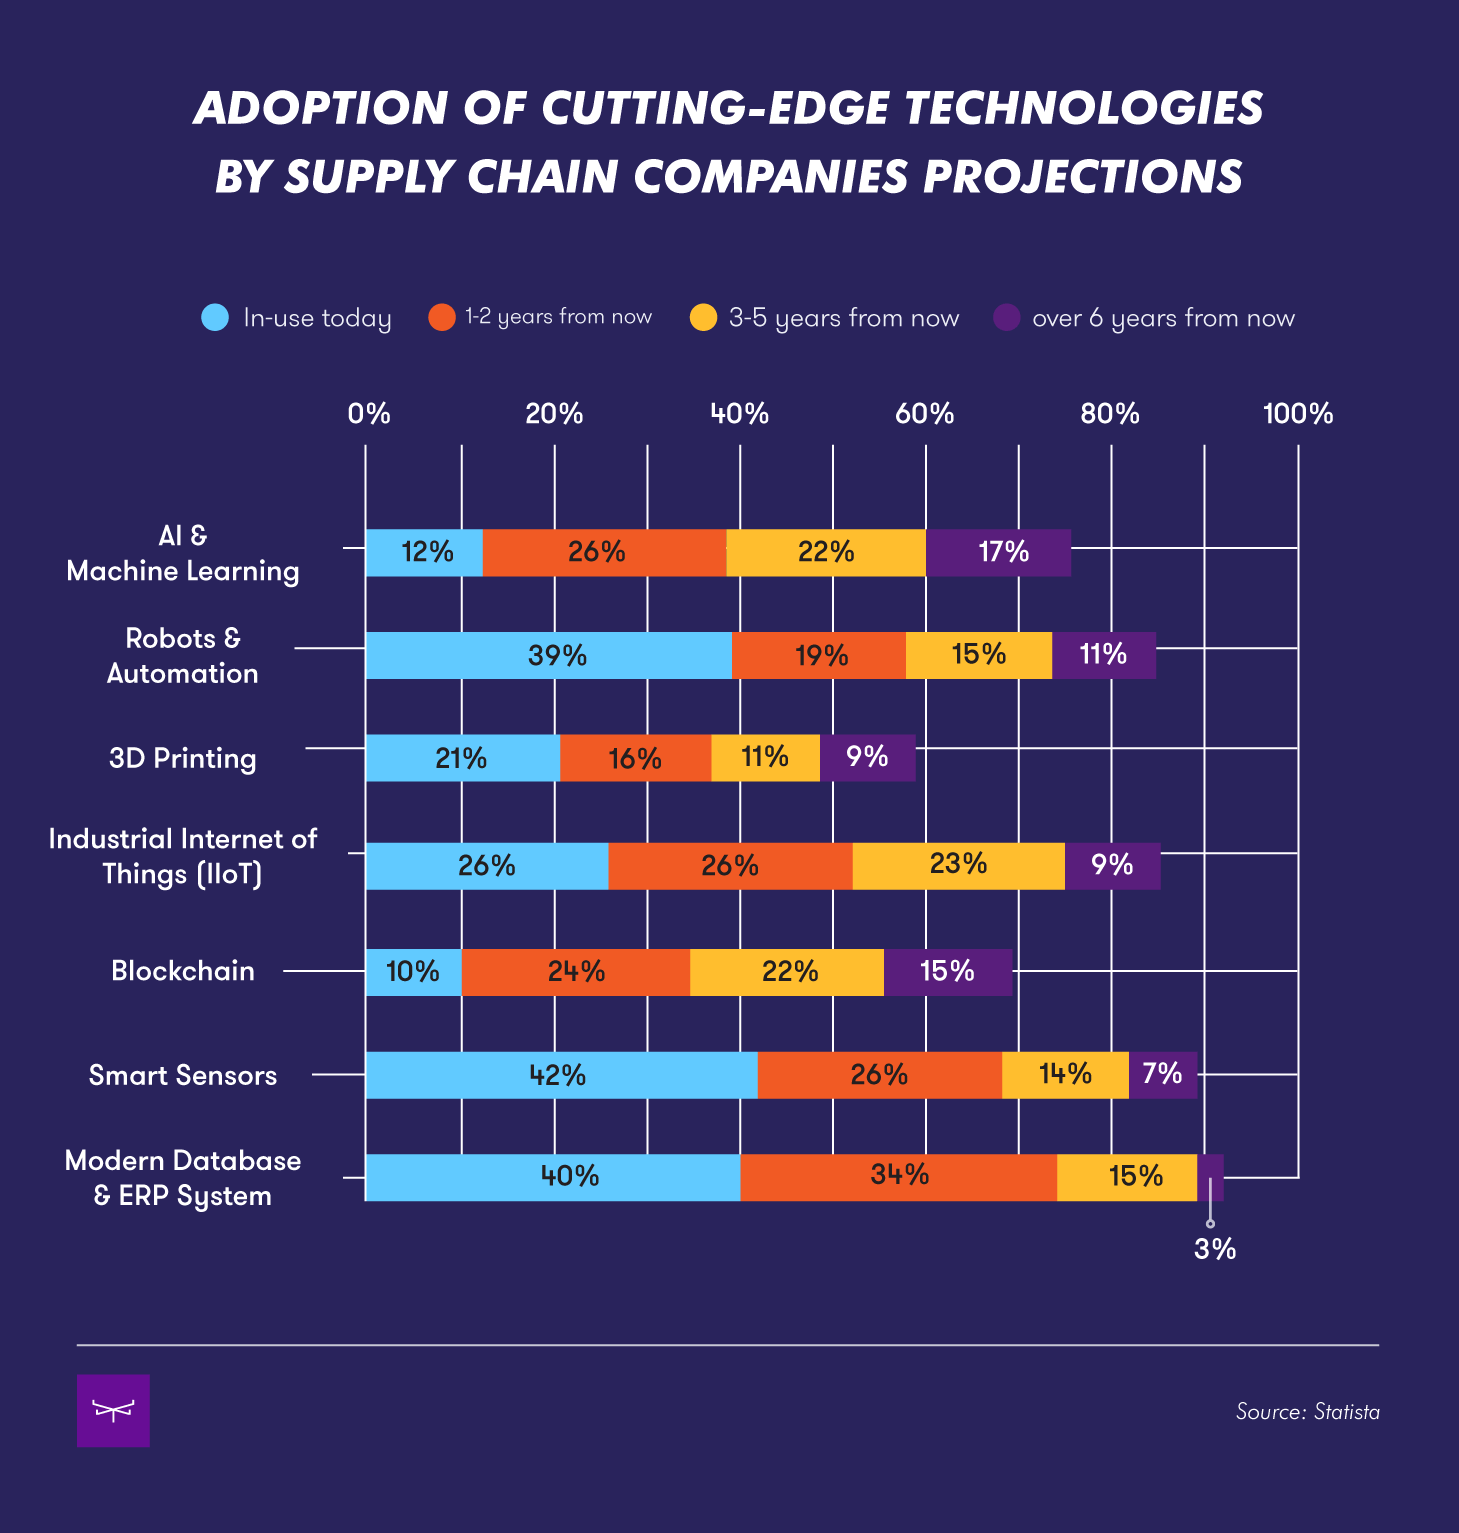 technology-adoption-by-supply-chain-companies-projections.png